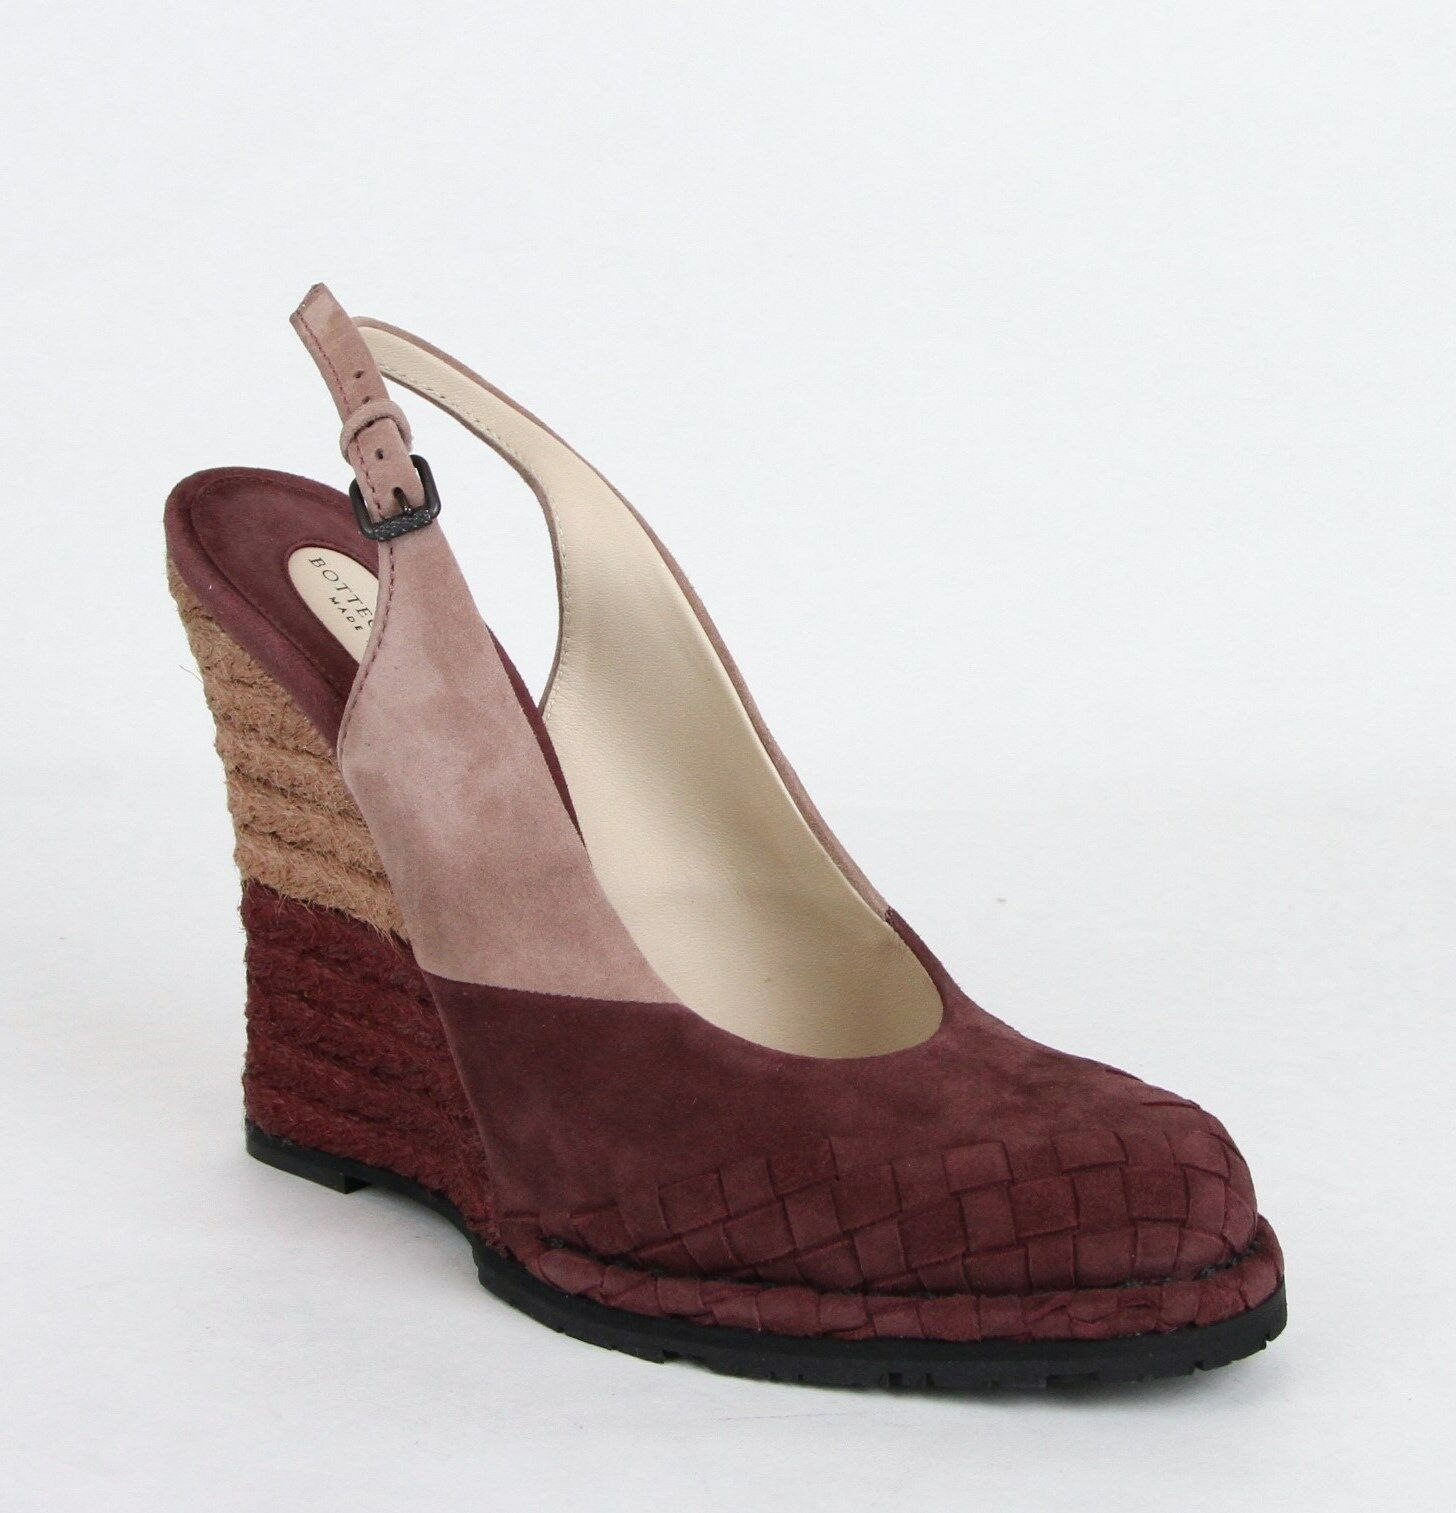 950 Bottega Veneta Women's Burgundy Luxe Kid Suede Wedge 40 US 10 465183 2200